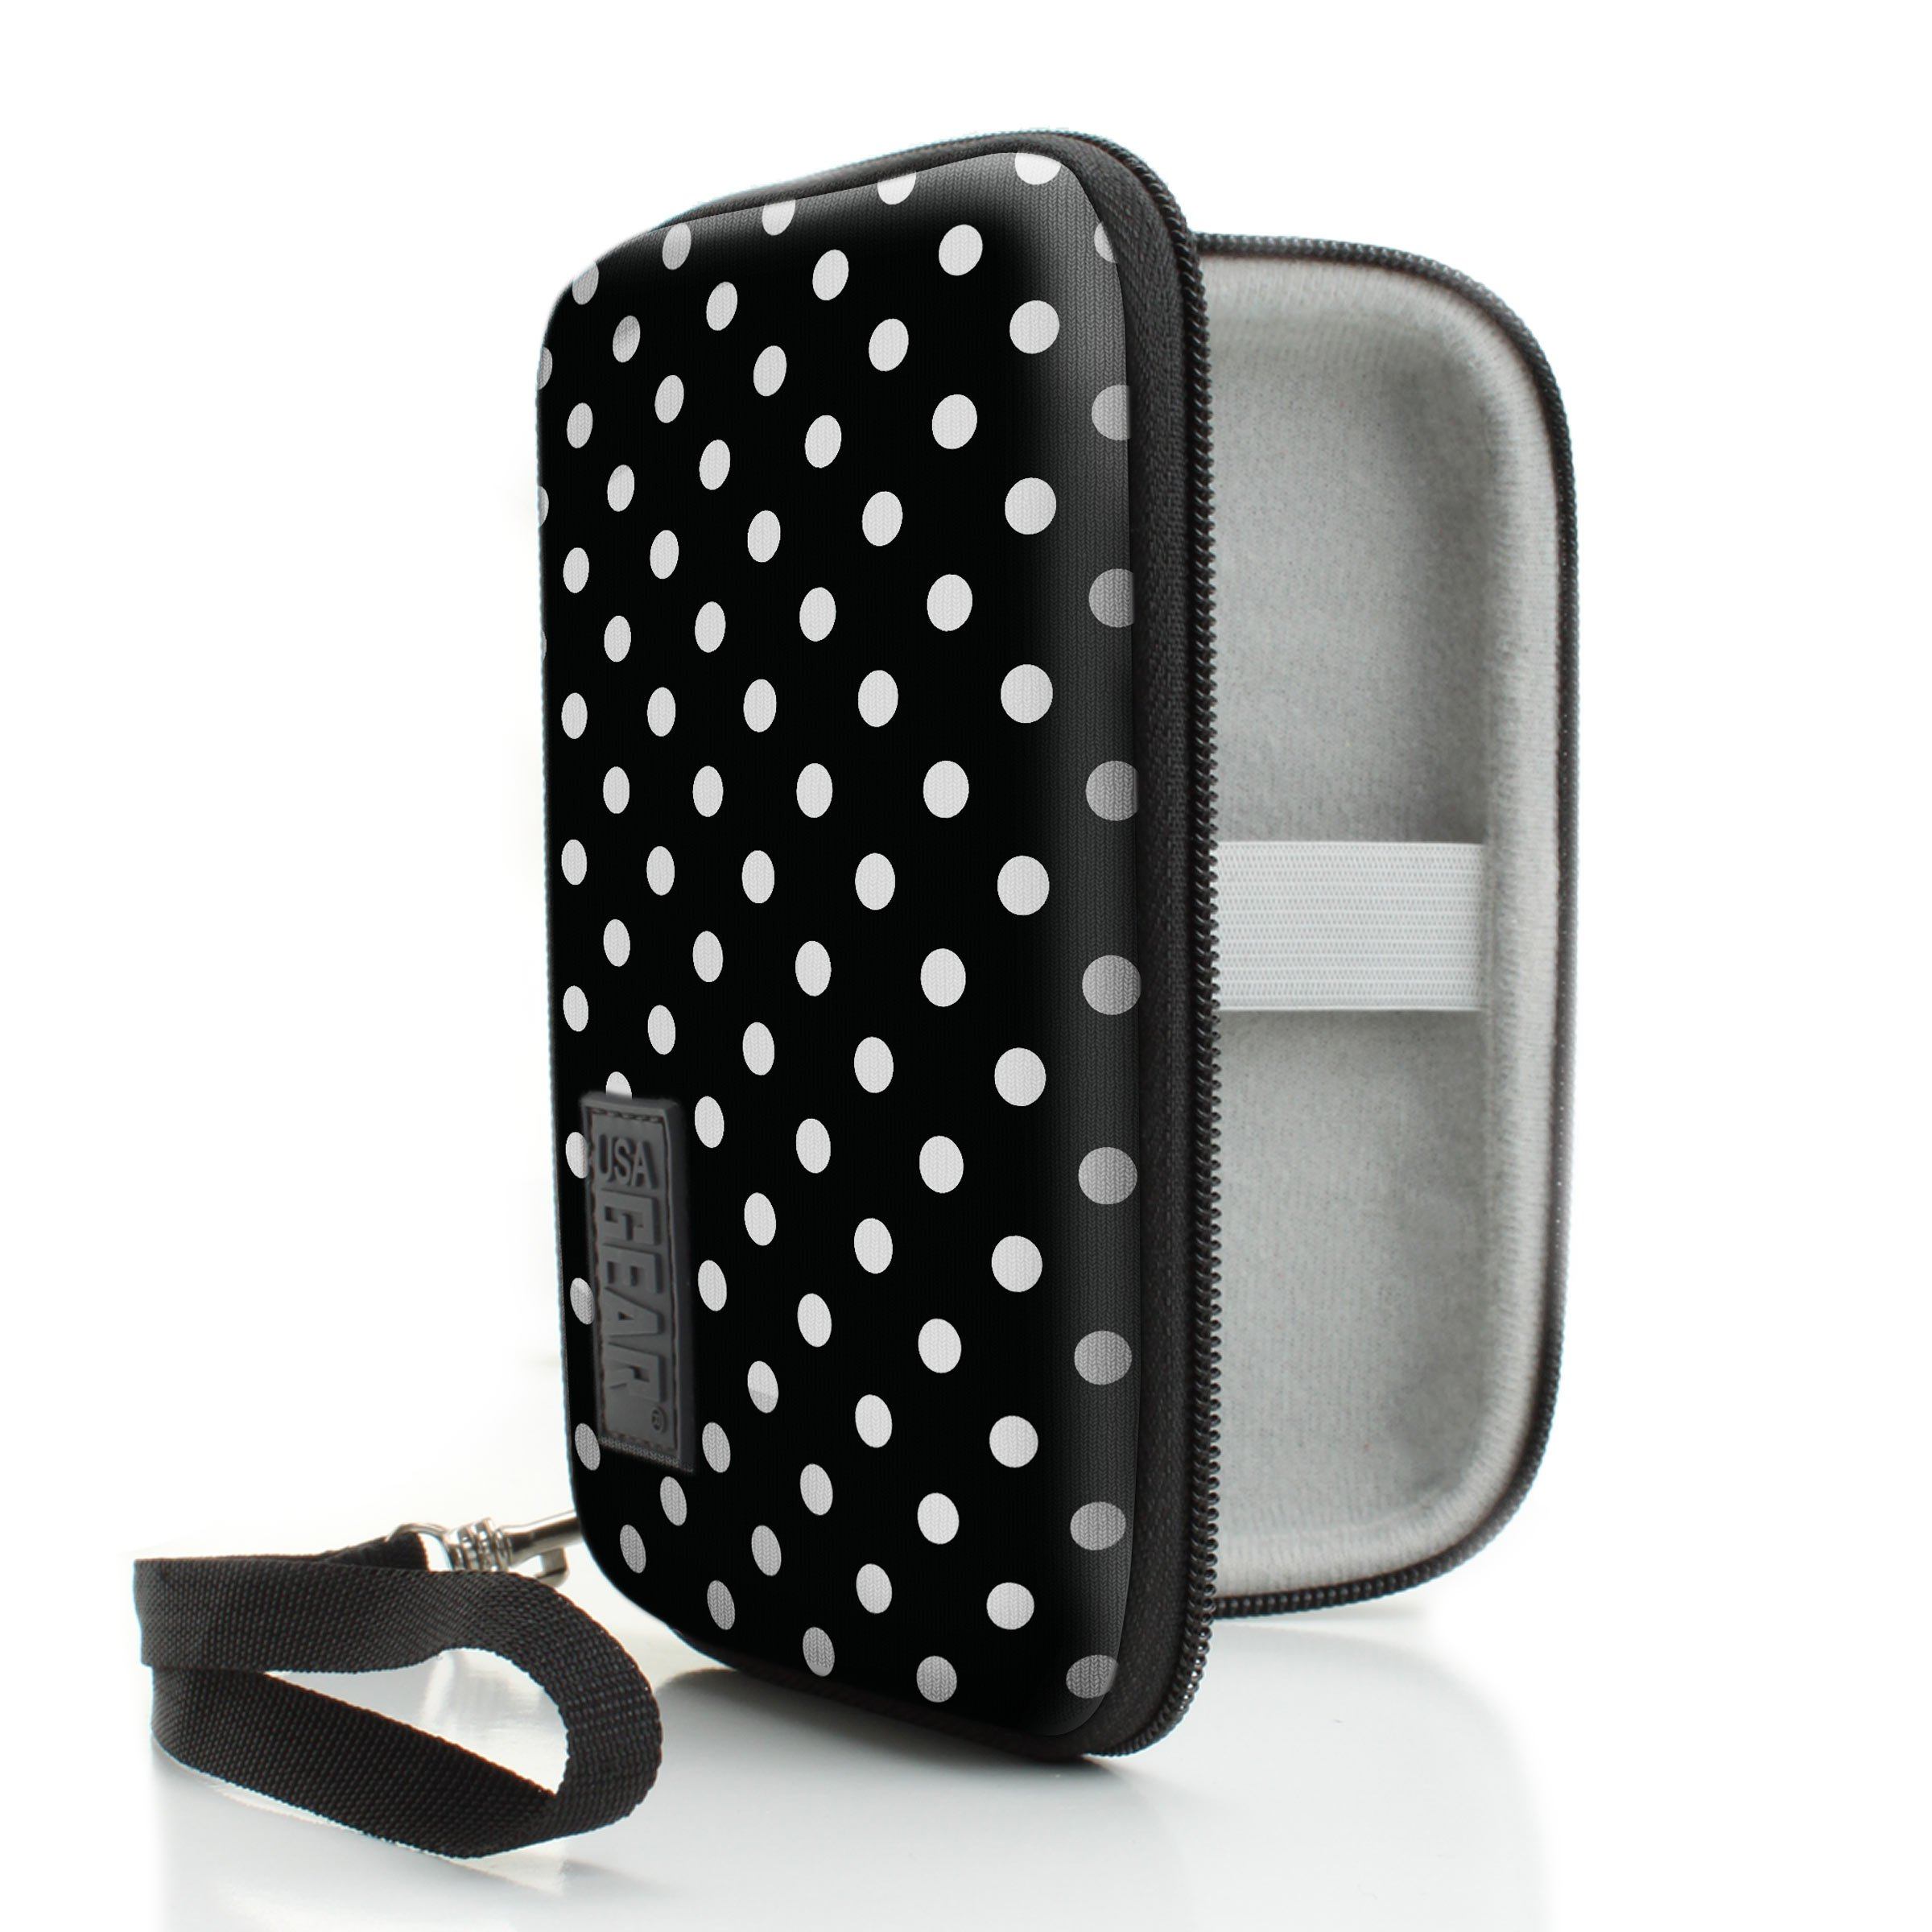 USA Gear Mini Photo Printer Travel Case for Kodak Mini 2 - Weather & Scratch Resistant Hard Shell, Carrying Wrist Strap with Storage for Charging Cable, Printer Cartridge & Photo Paper - Polka Dot